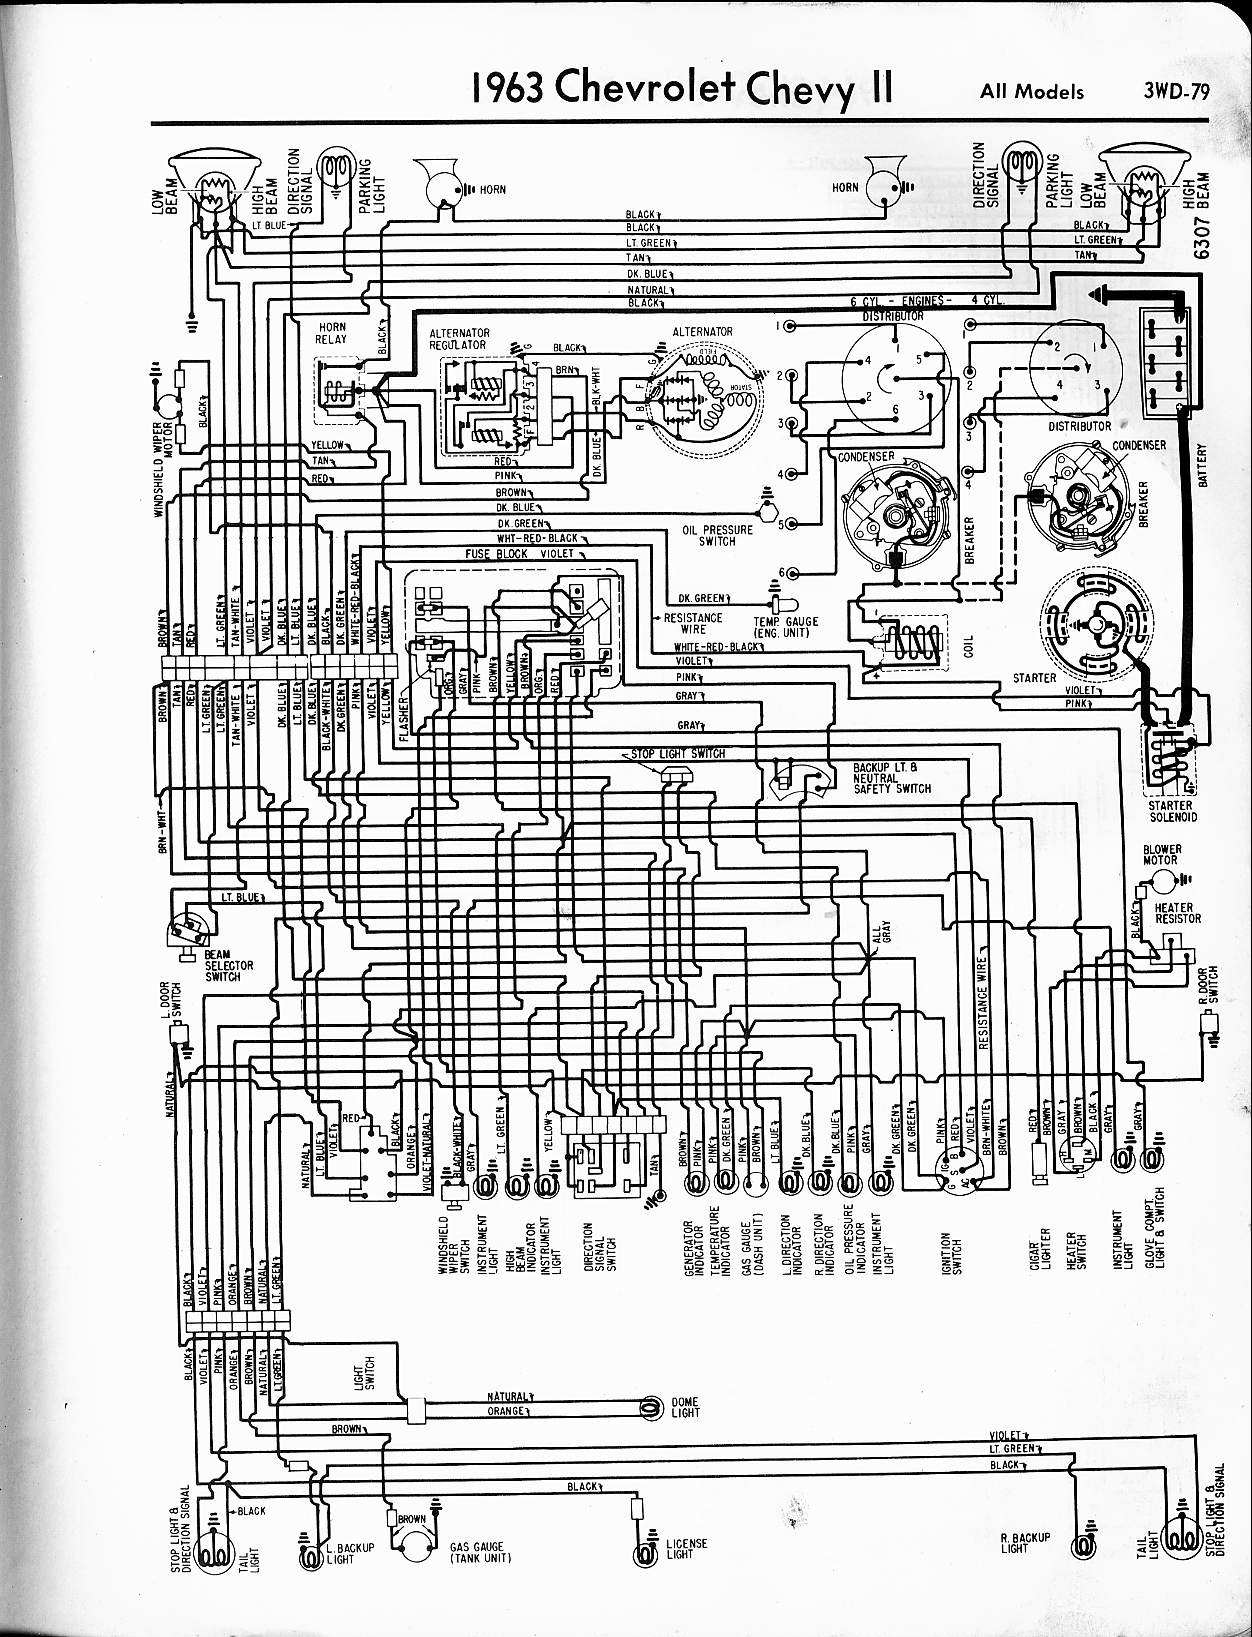 57 65 chevy wiring diagrams rh oldcarmanualproject com 1967 Nova Wiring Diagram PDF 1966 Chevy Nova Wiring Diagram